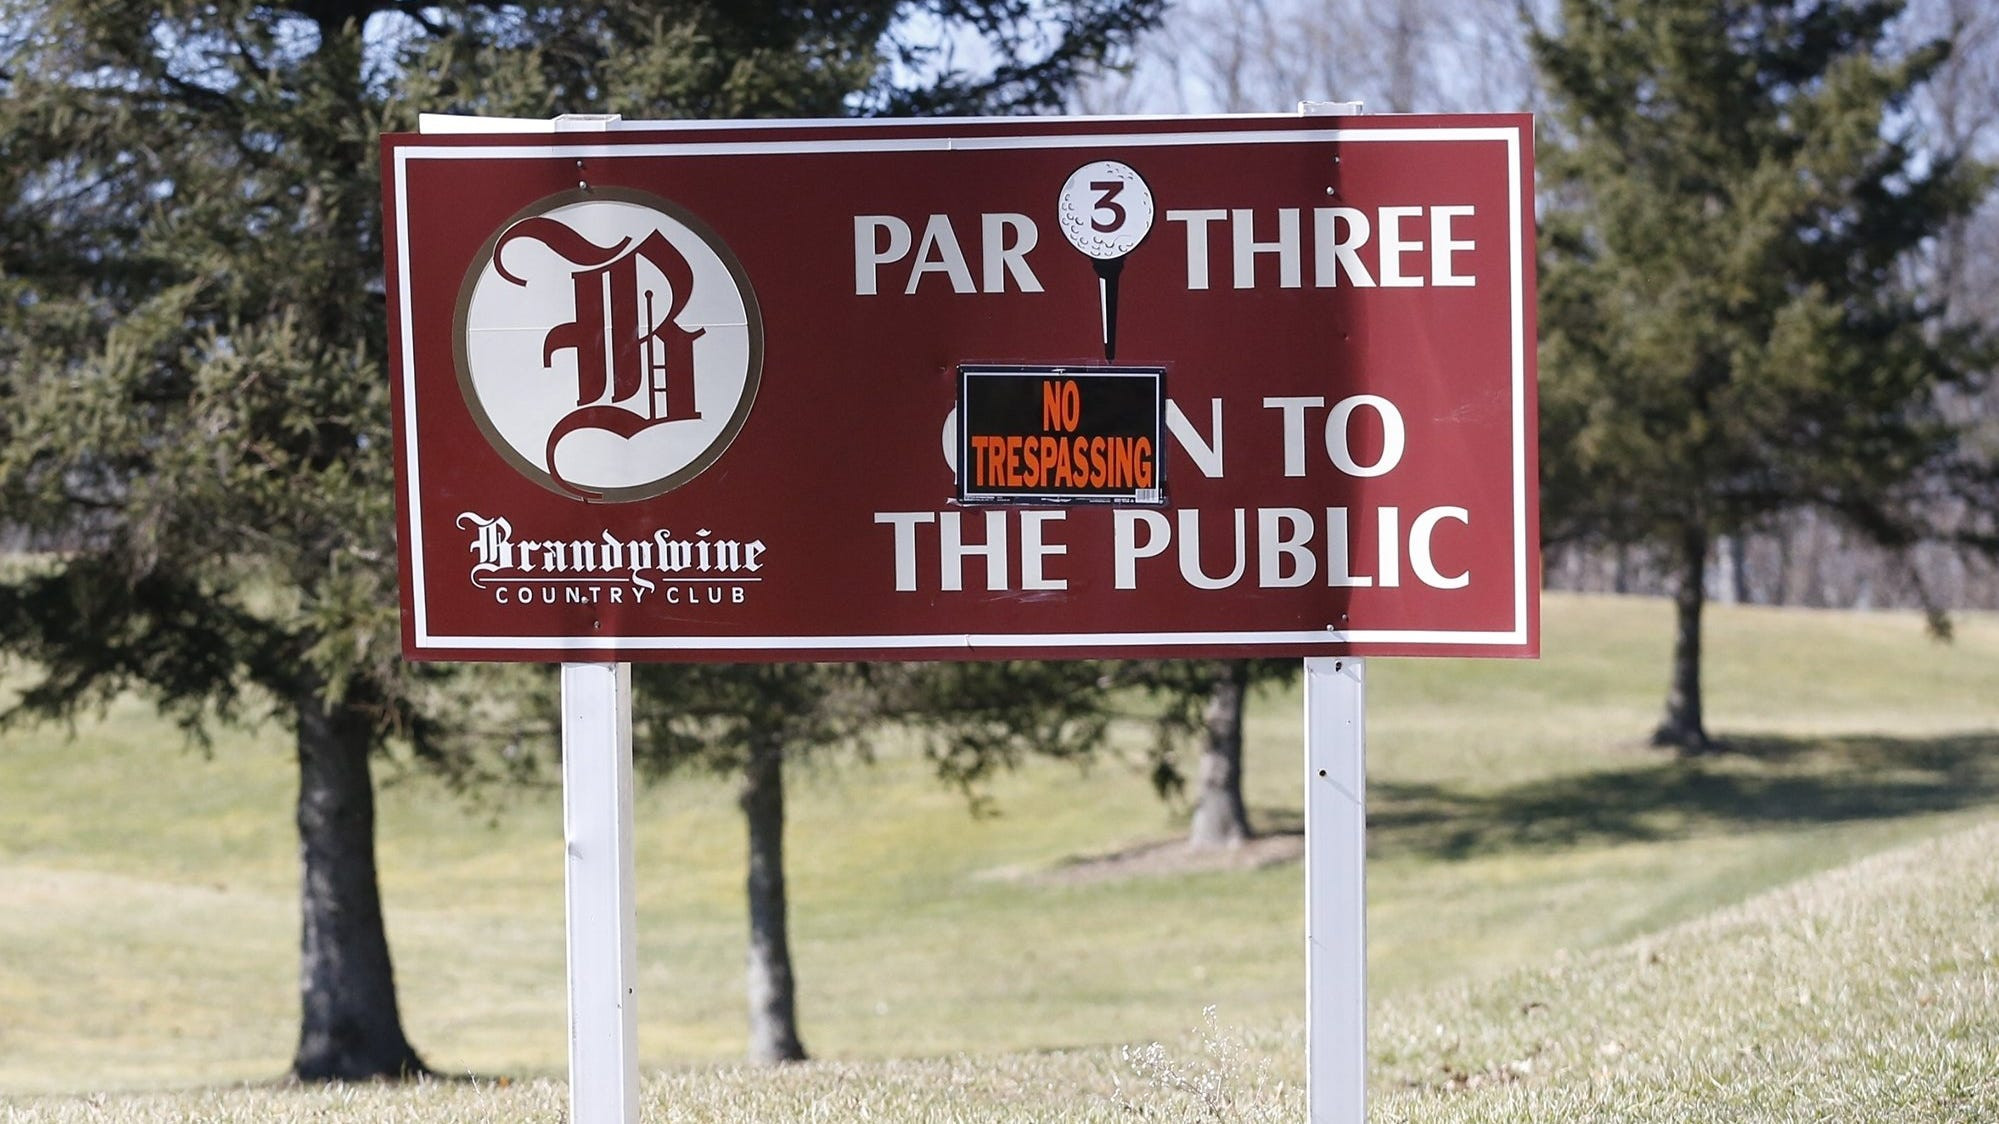 Former Brandywine Country Club to become part of Cuyahoga Valley National Park - Akron Beacon Journal